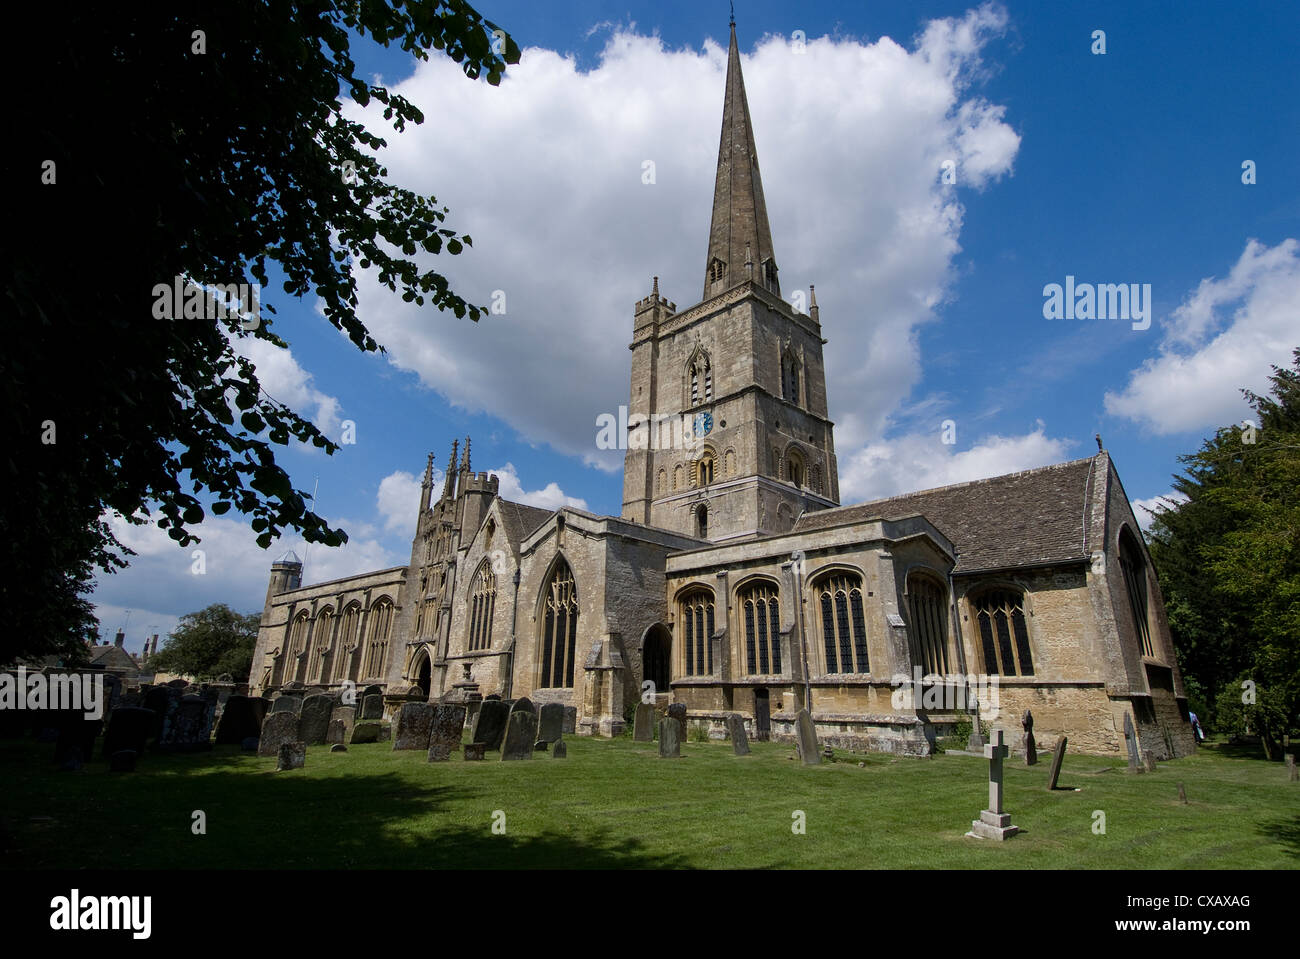 Burford Church, Burford, Oxfordshire, England, United Kingdom, Europe - Stock Image